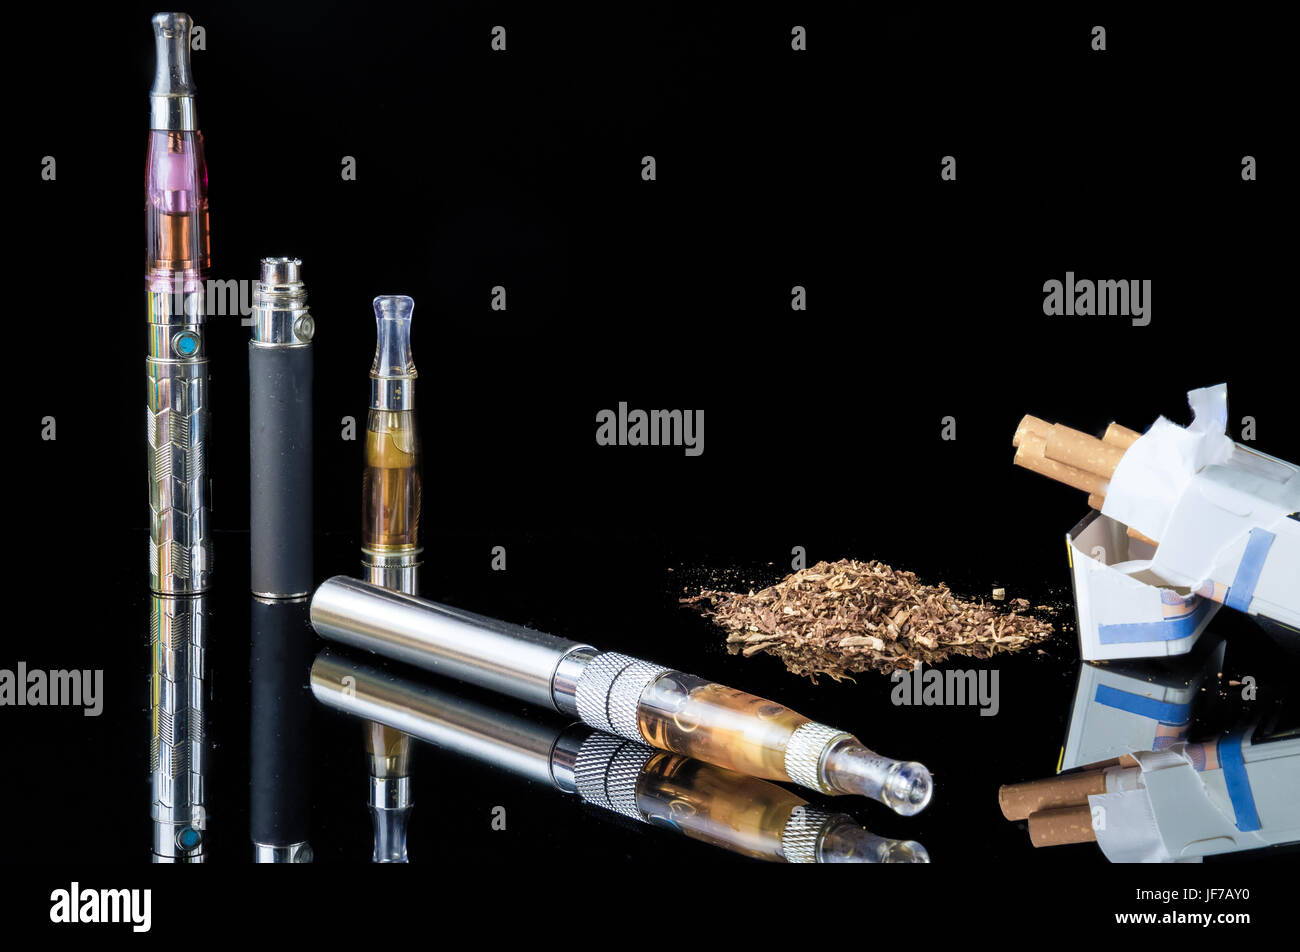 E-cigarette with pile of grinded tobacco leaves and a pack of smokes [FIX] - Stock Image